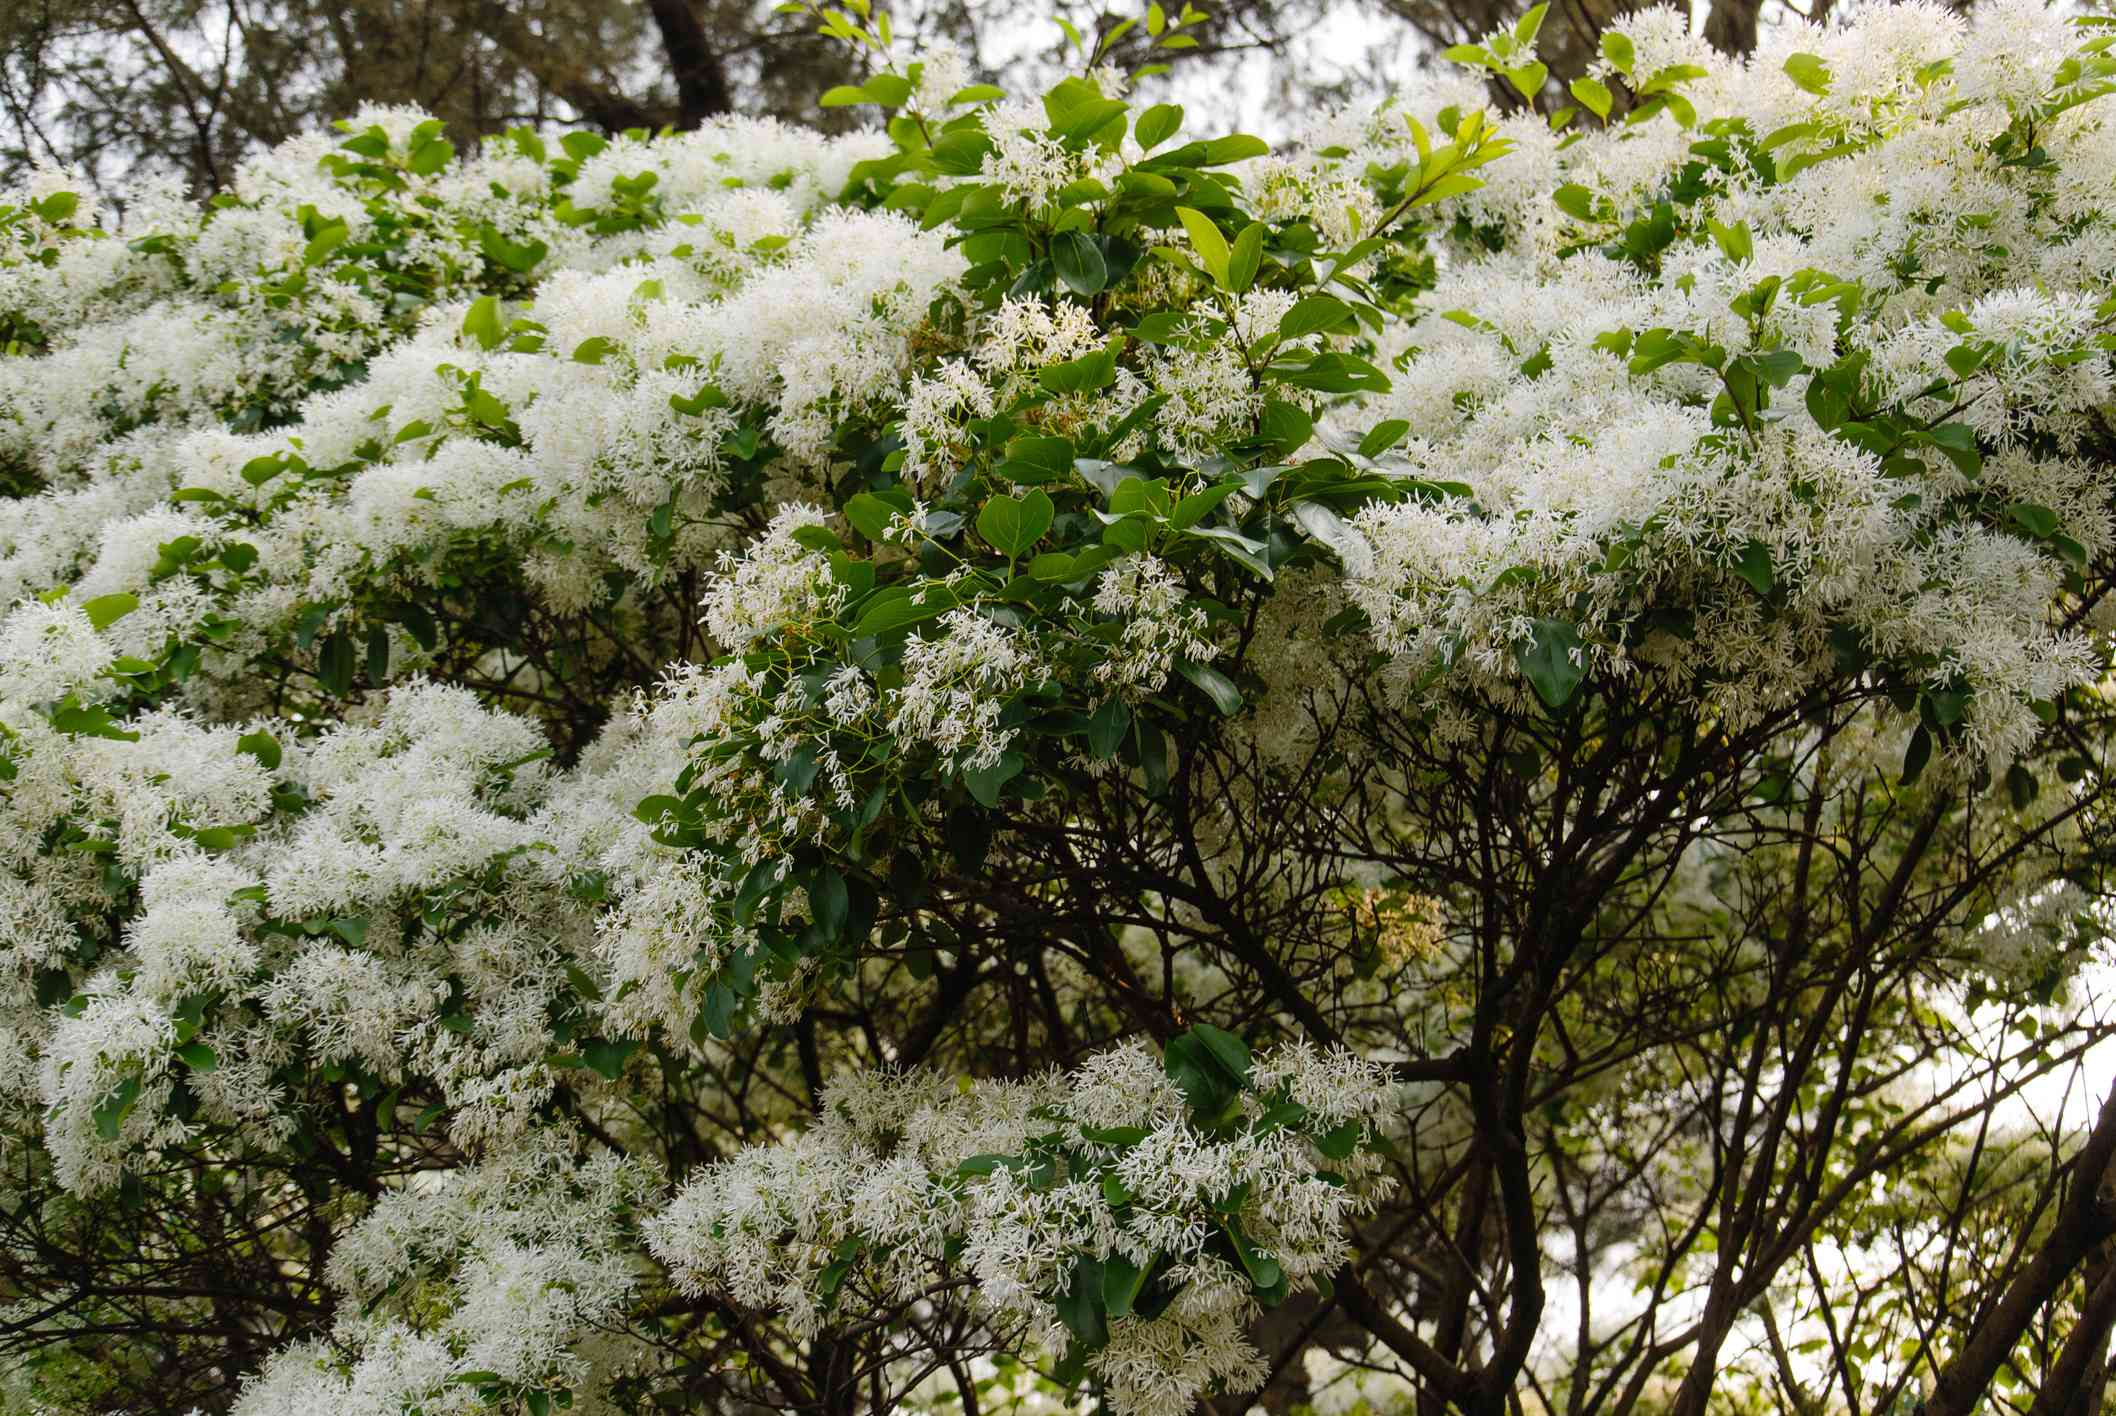 Images of Old Man's Beard tree with white blossoms and green leaves.